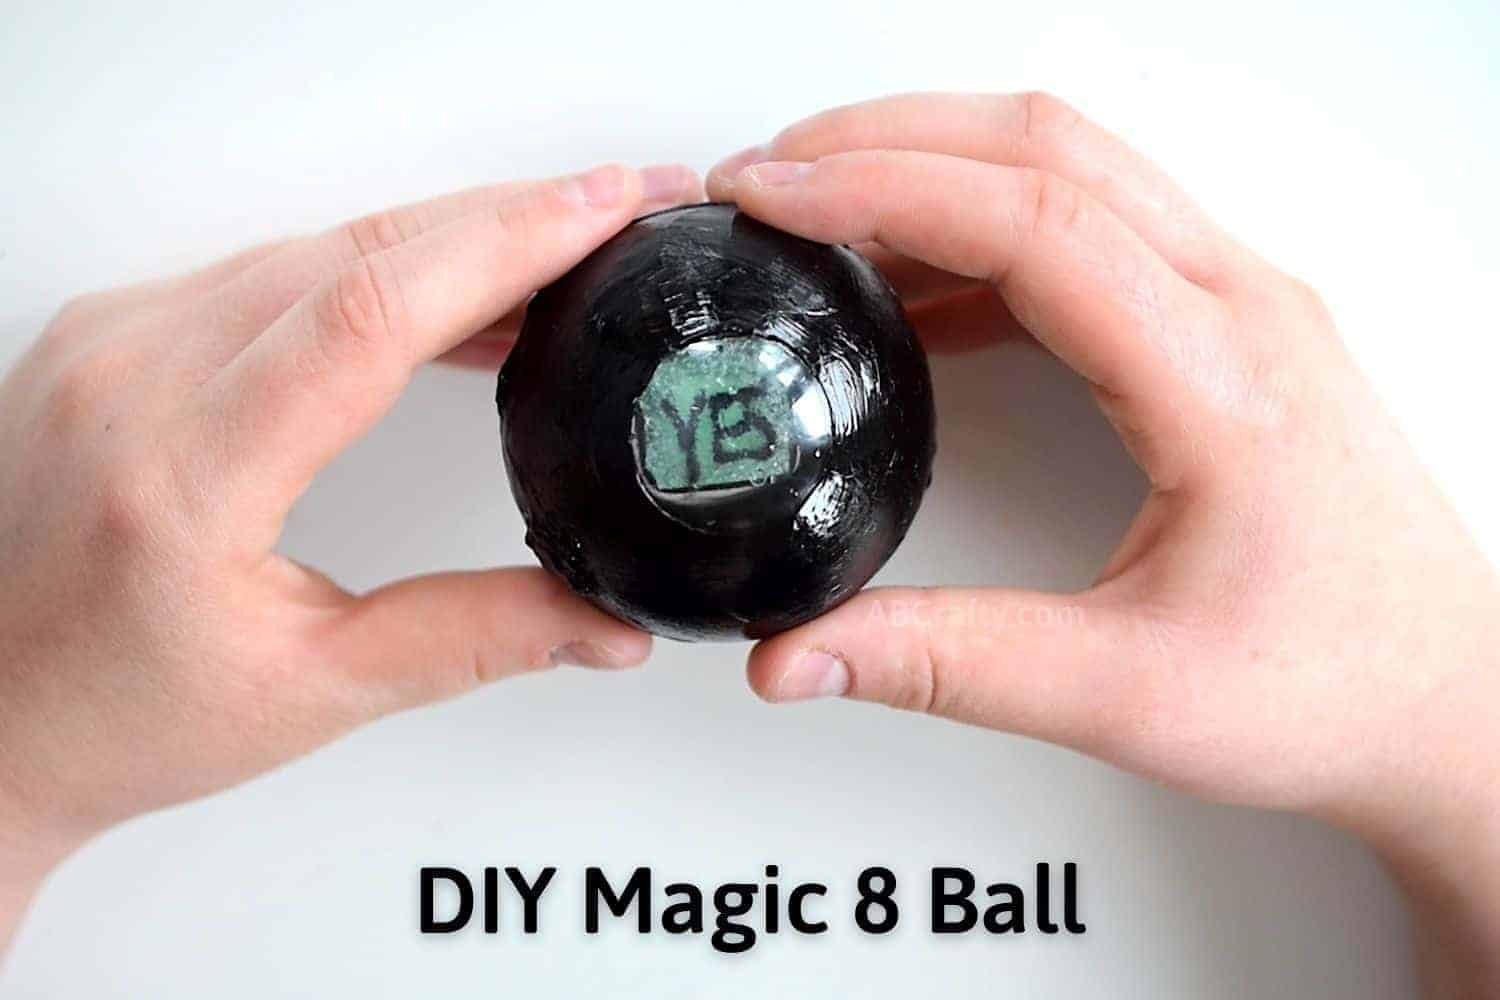 DIY Magic 8 Ball held in hands showing an answer of 'yes' with the words DIY Magic 8 Ball written on the image